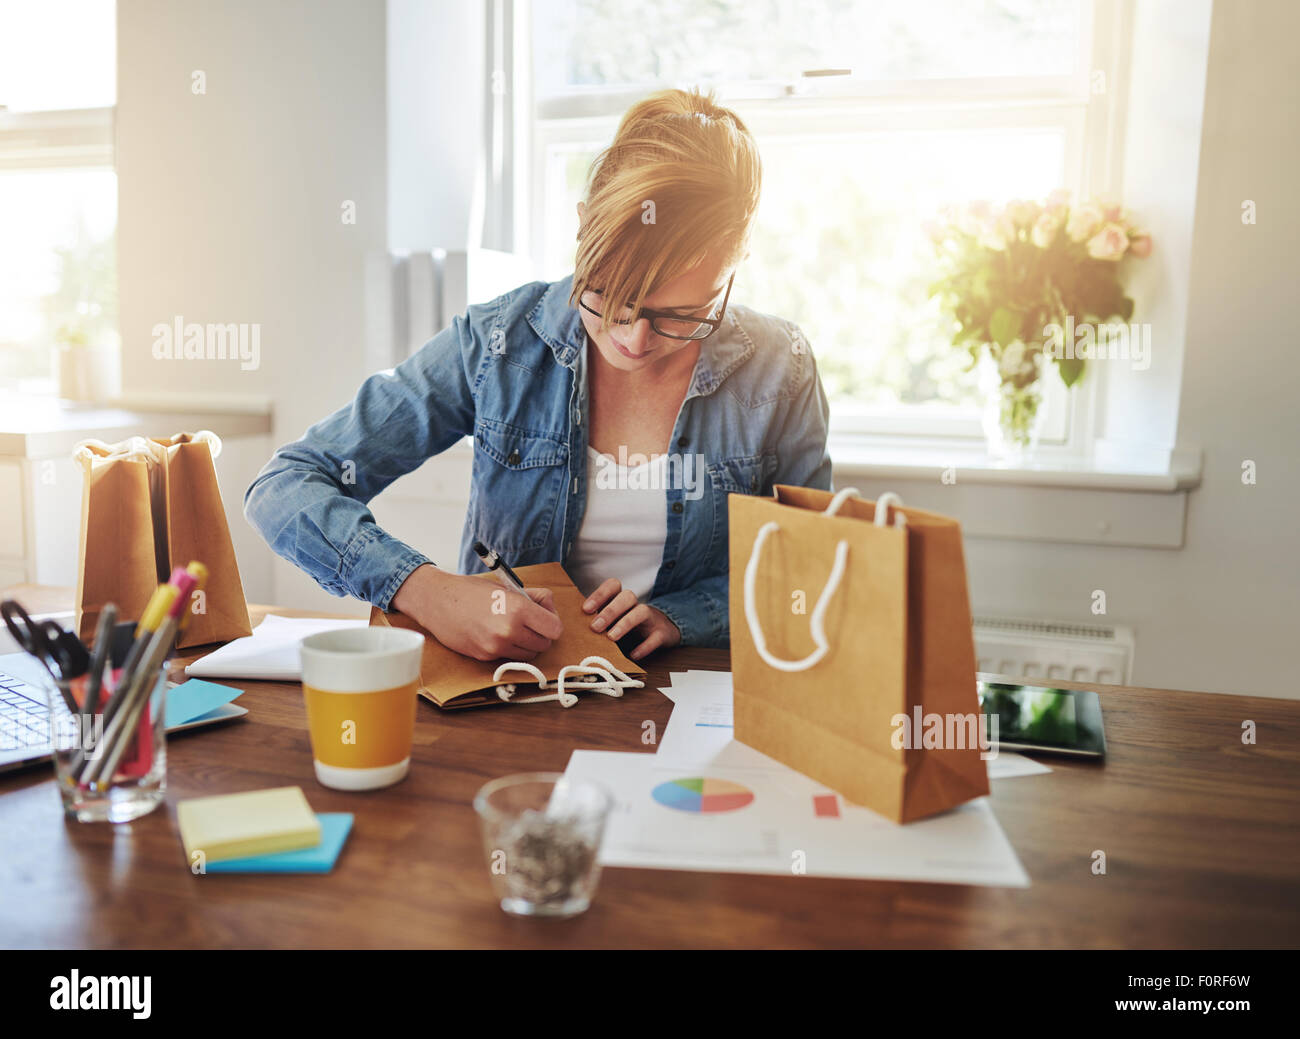 Young businesswoman designing packaging for her new start-up online business sitting at her desk at home working - Stock Image